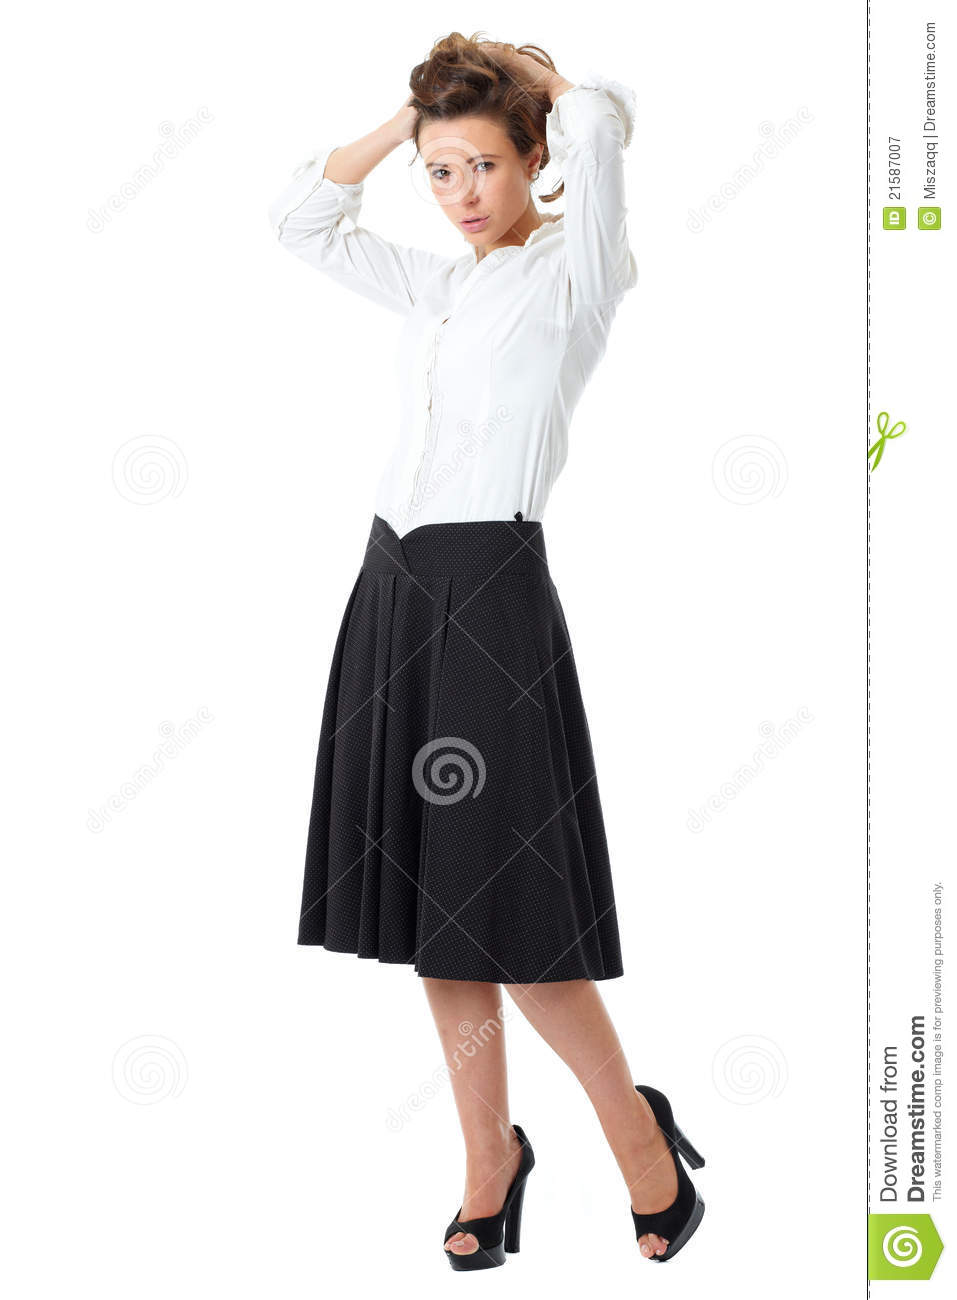 Attractive Female In White Shirt And Black Skirt Royalty Free ...